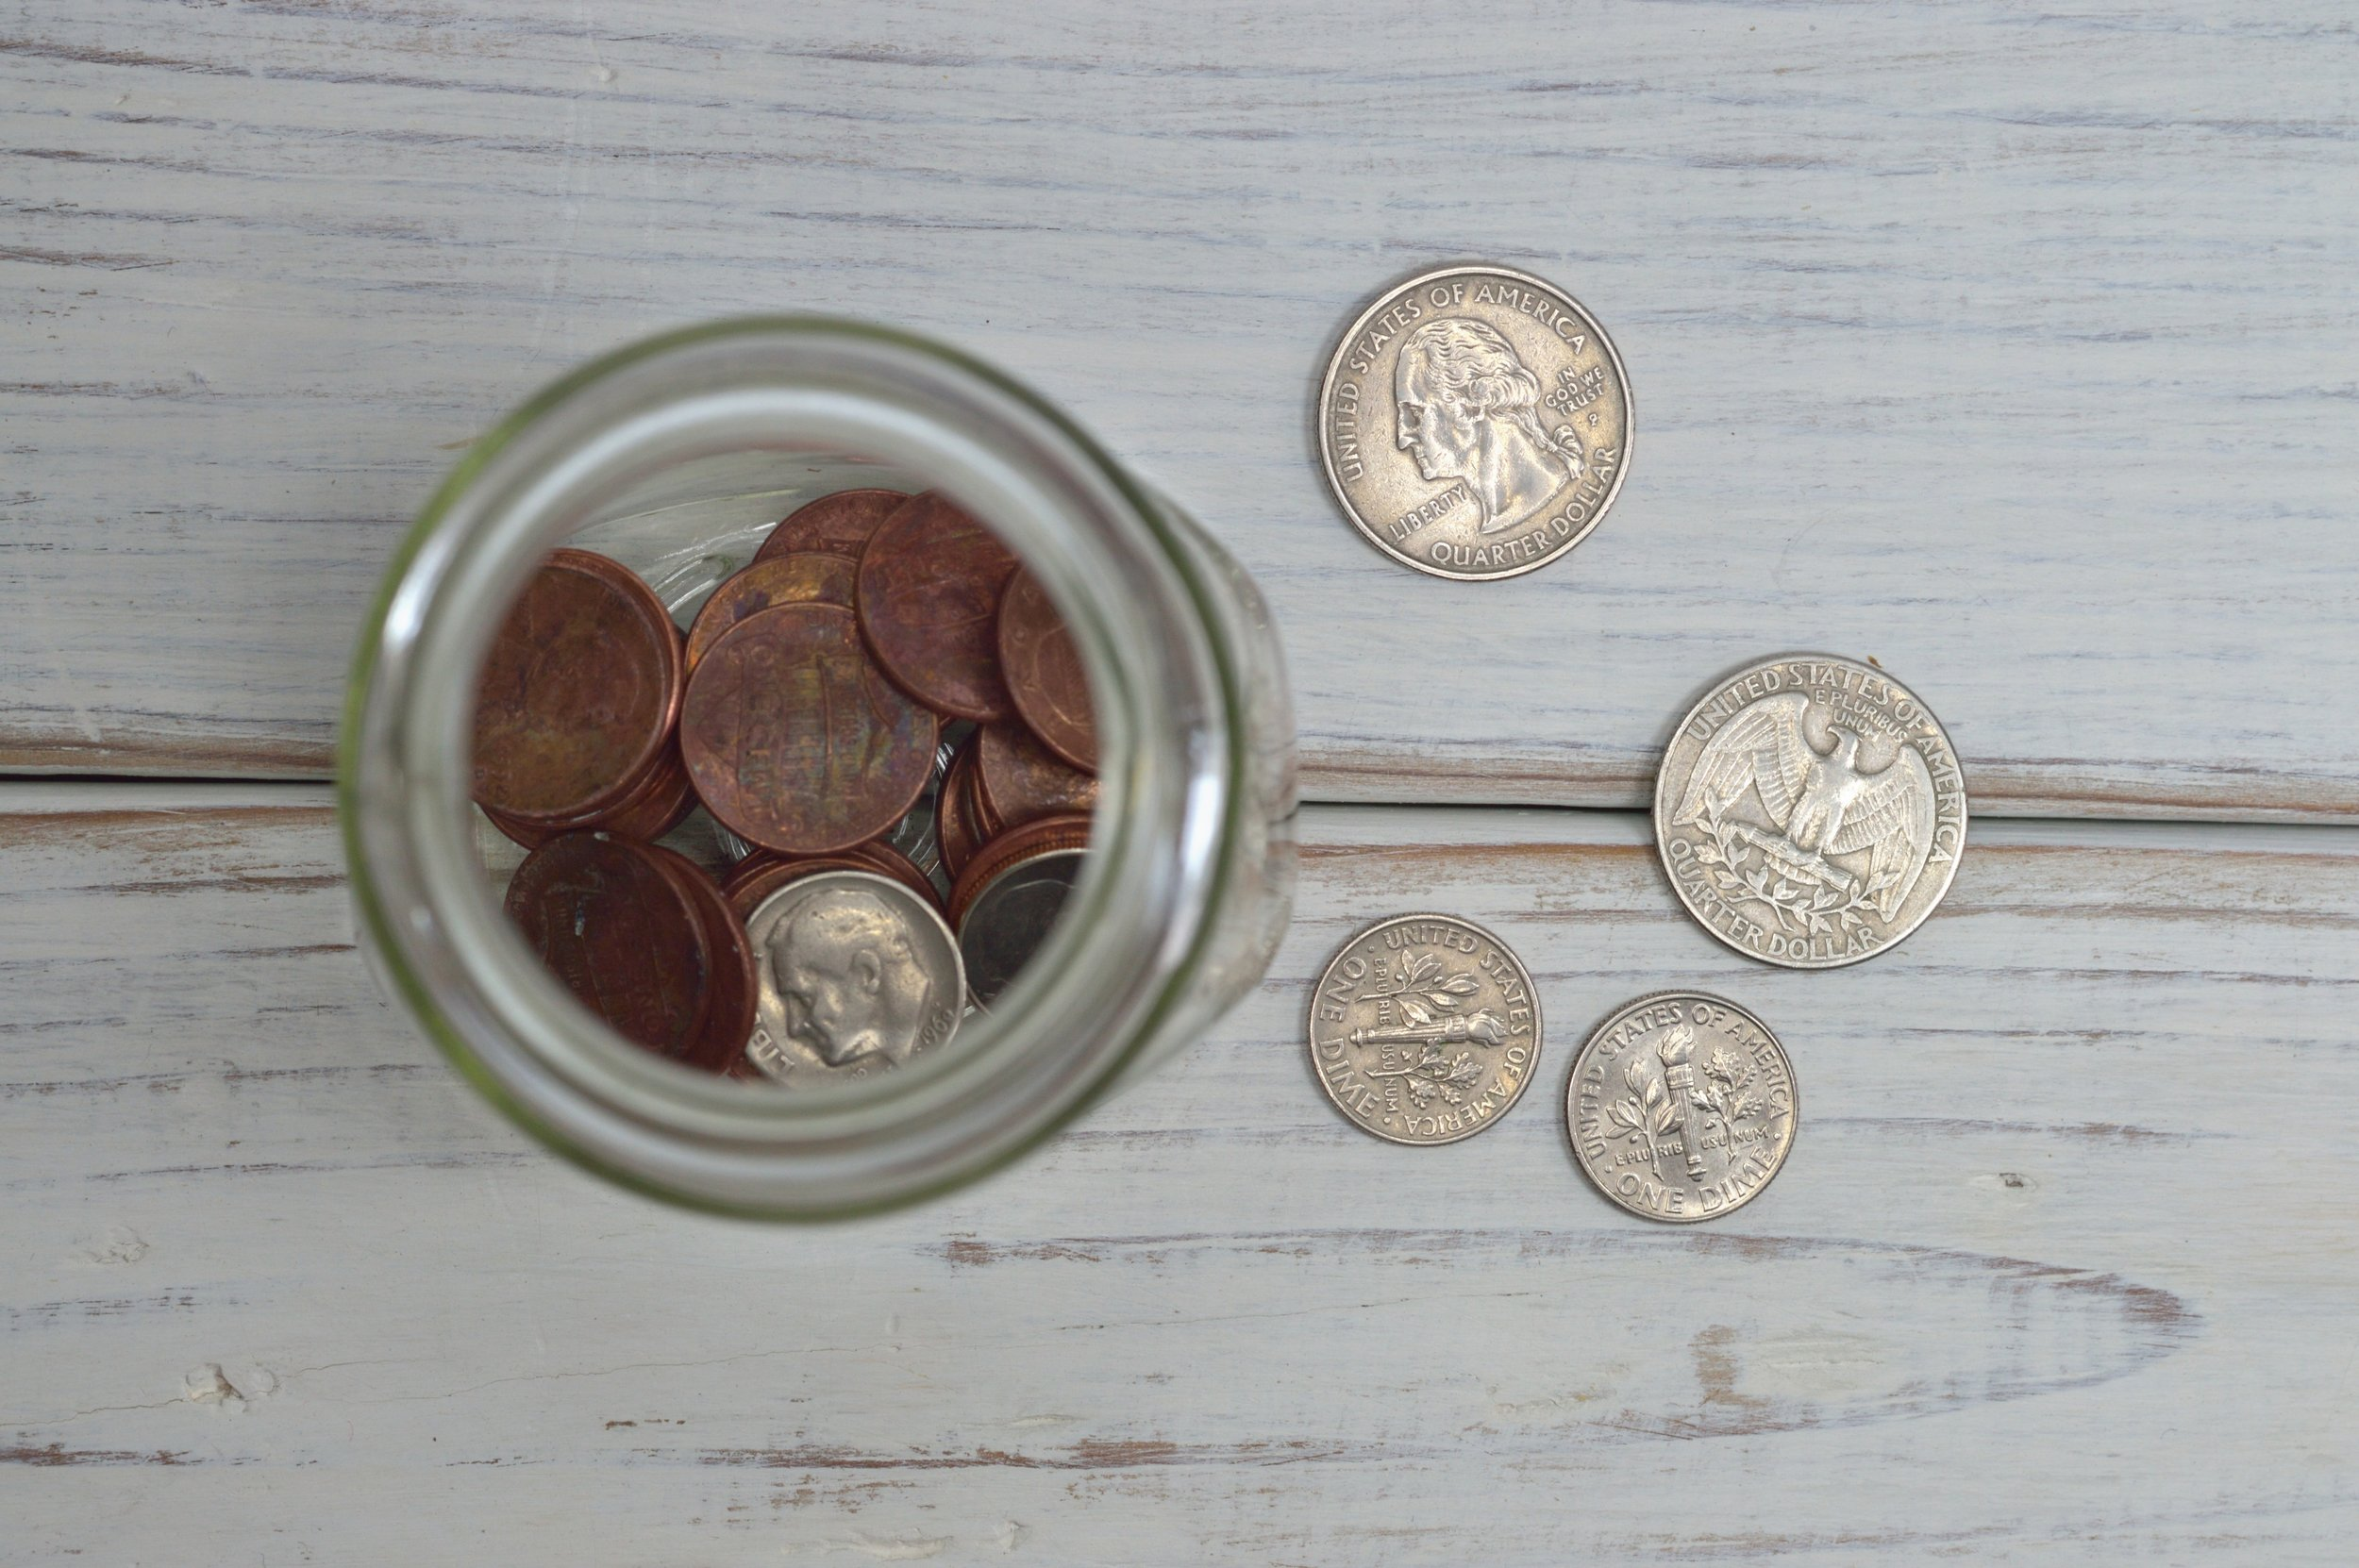 4 Simple Ways to Make Saving More Fun - A little creativity can take the boredom out of saving.